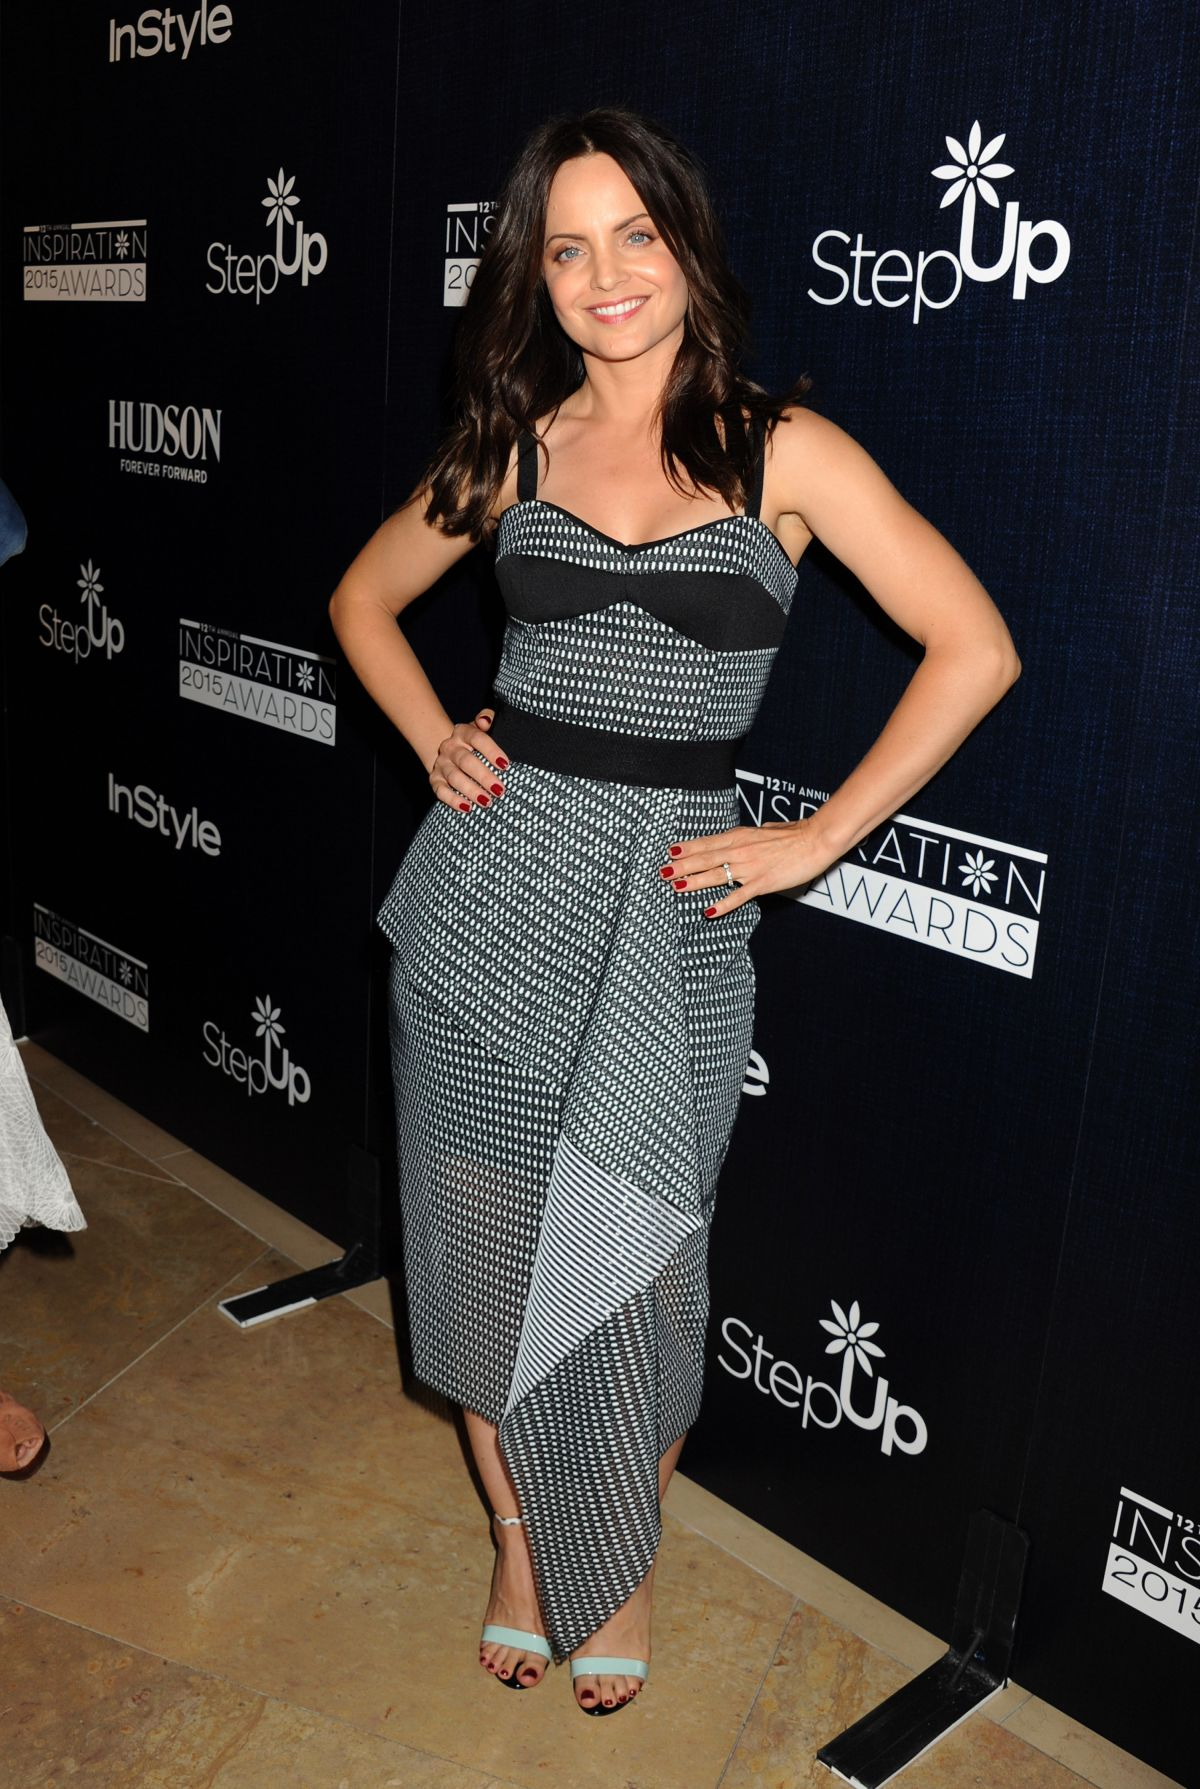 MENA SUVARI at Step Up 12th Annual Inspiration Awards in Beverly Hills